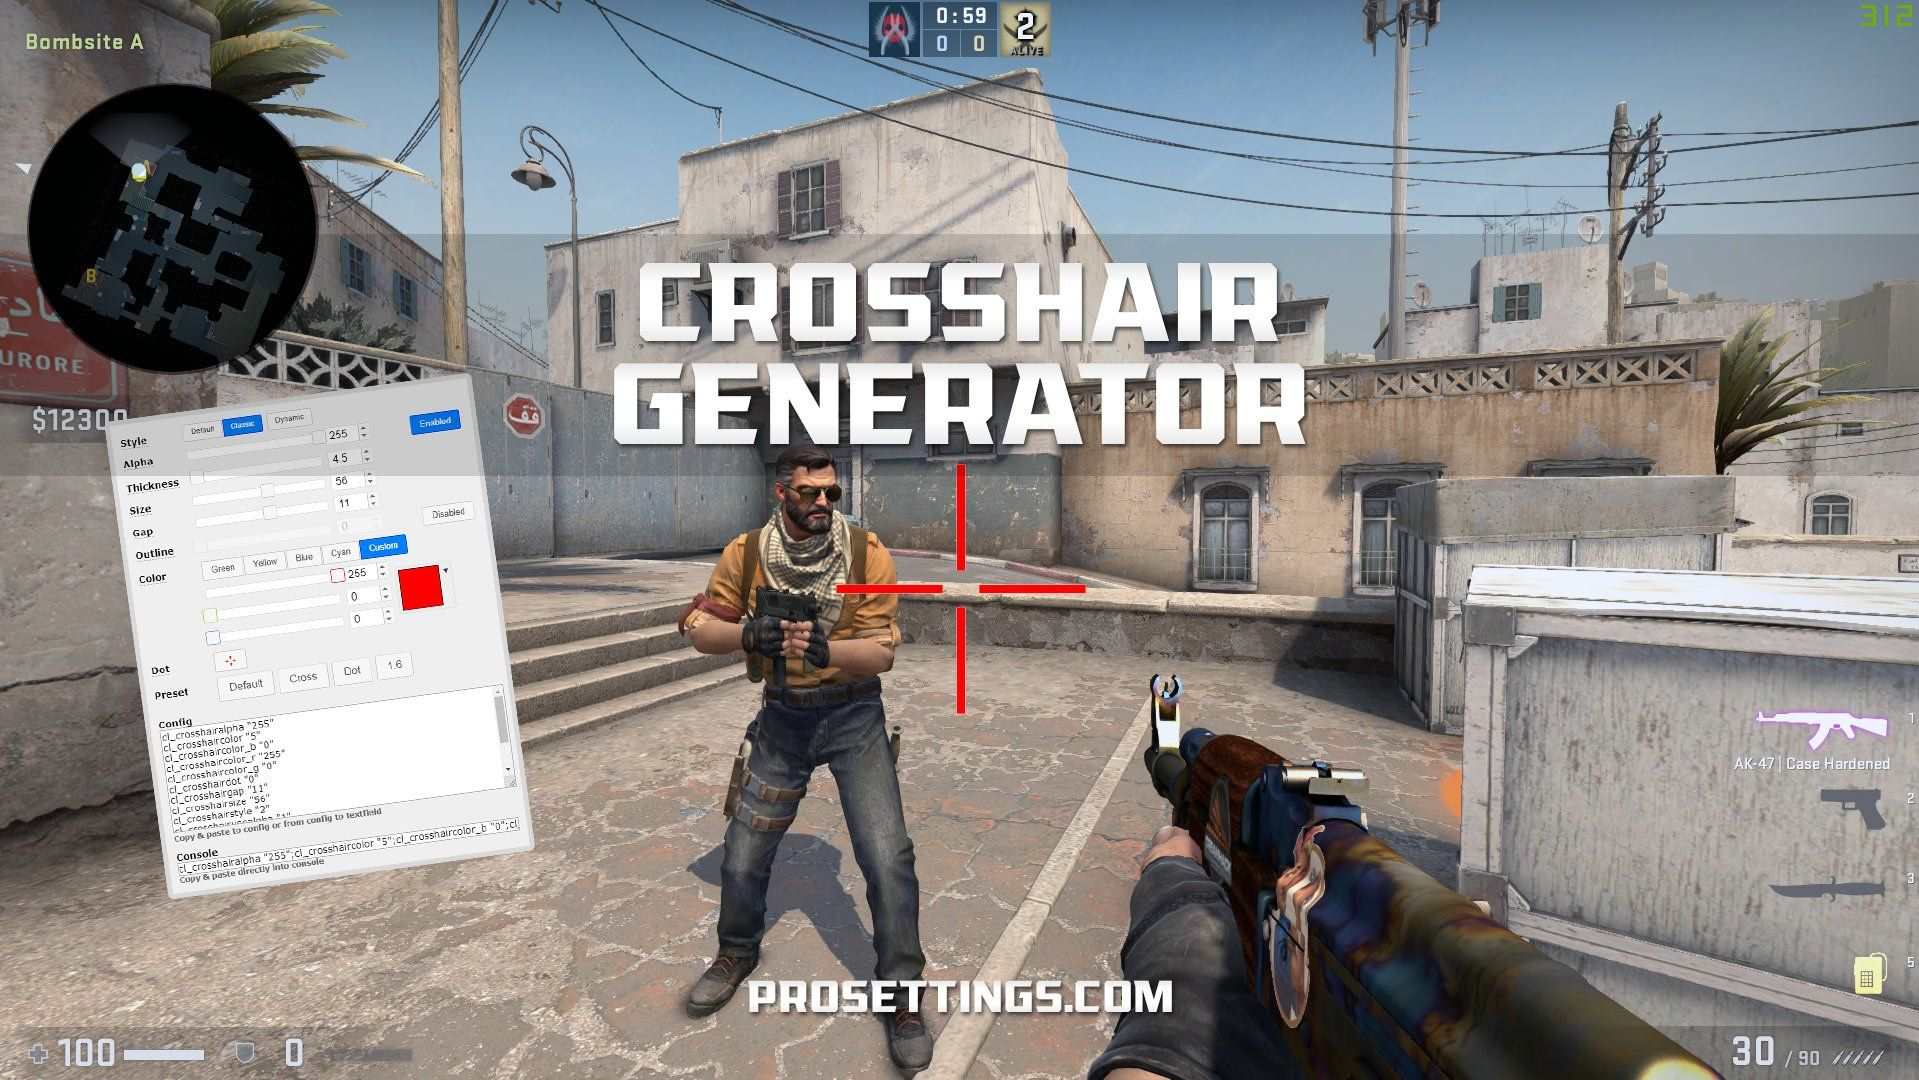 Crosshair Generator For Cs Go Prosettings Pro Tools Generation Goes Pro Tools To become a pro, you need the settings of a pro. crosshair generator for cs go